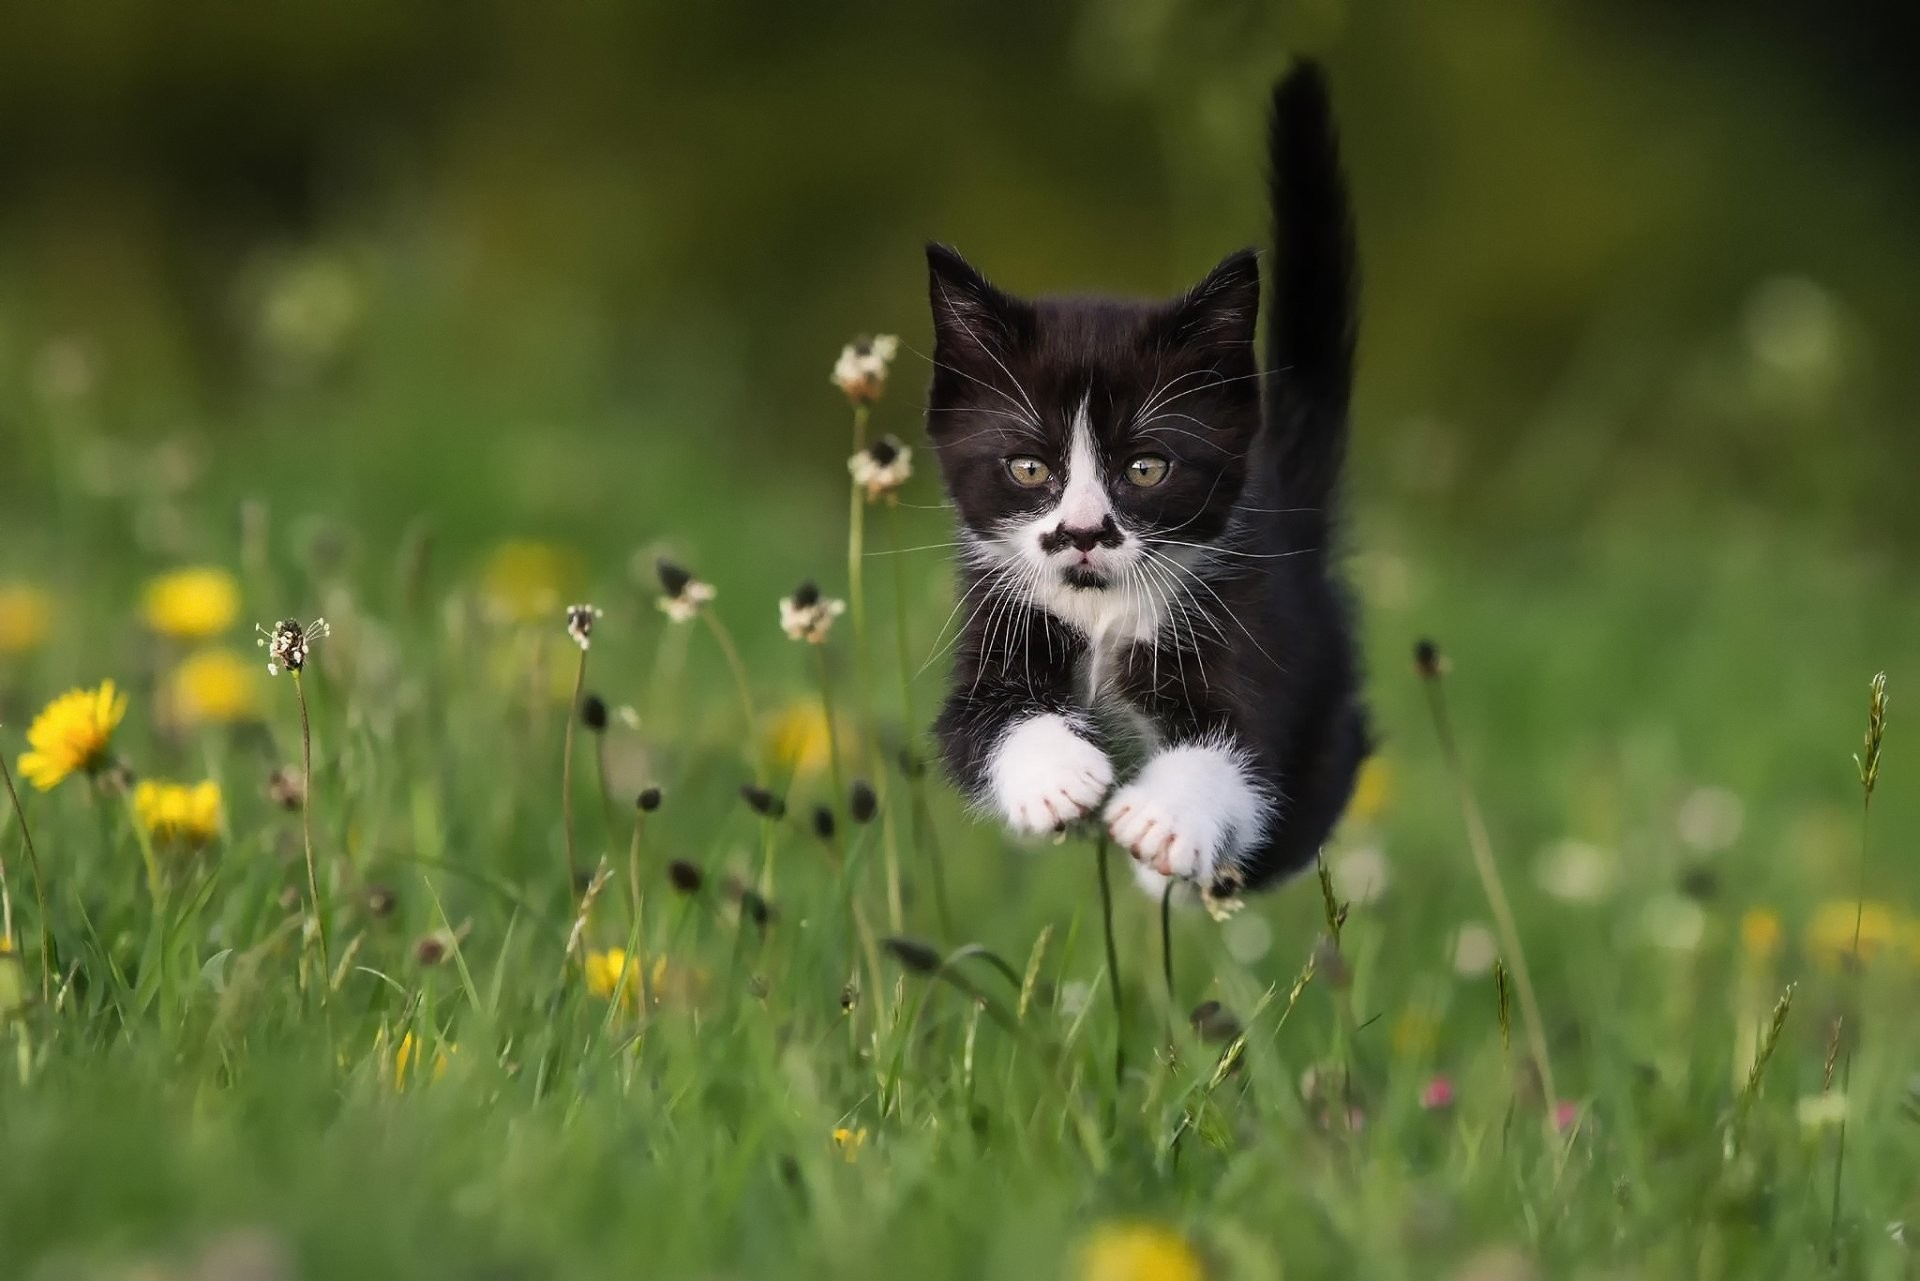 1920x1281 cat kitten grass summer